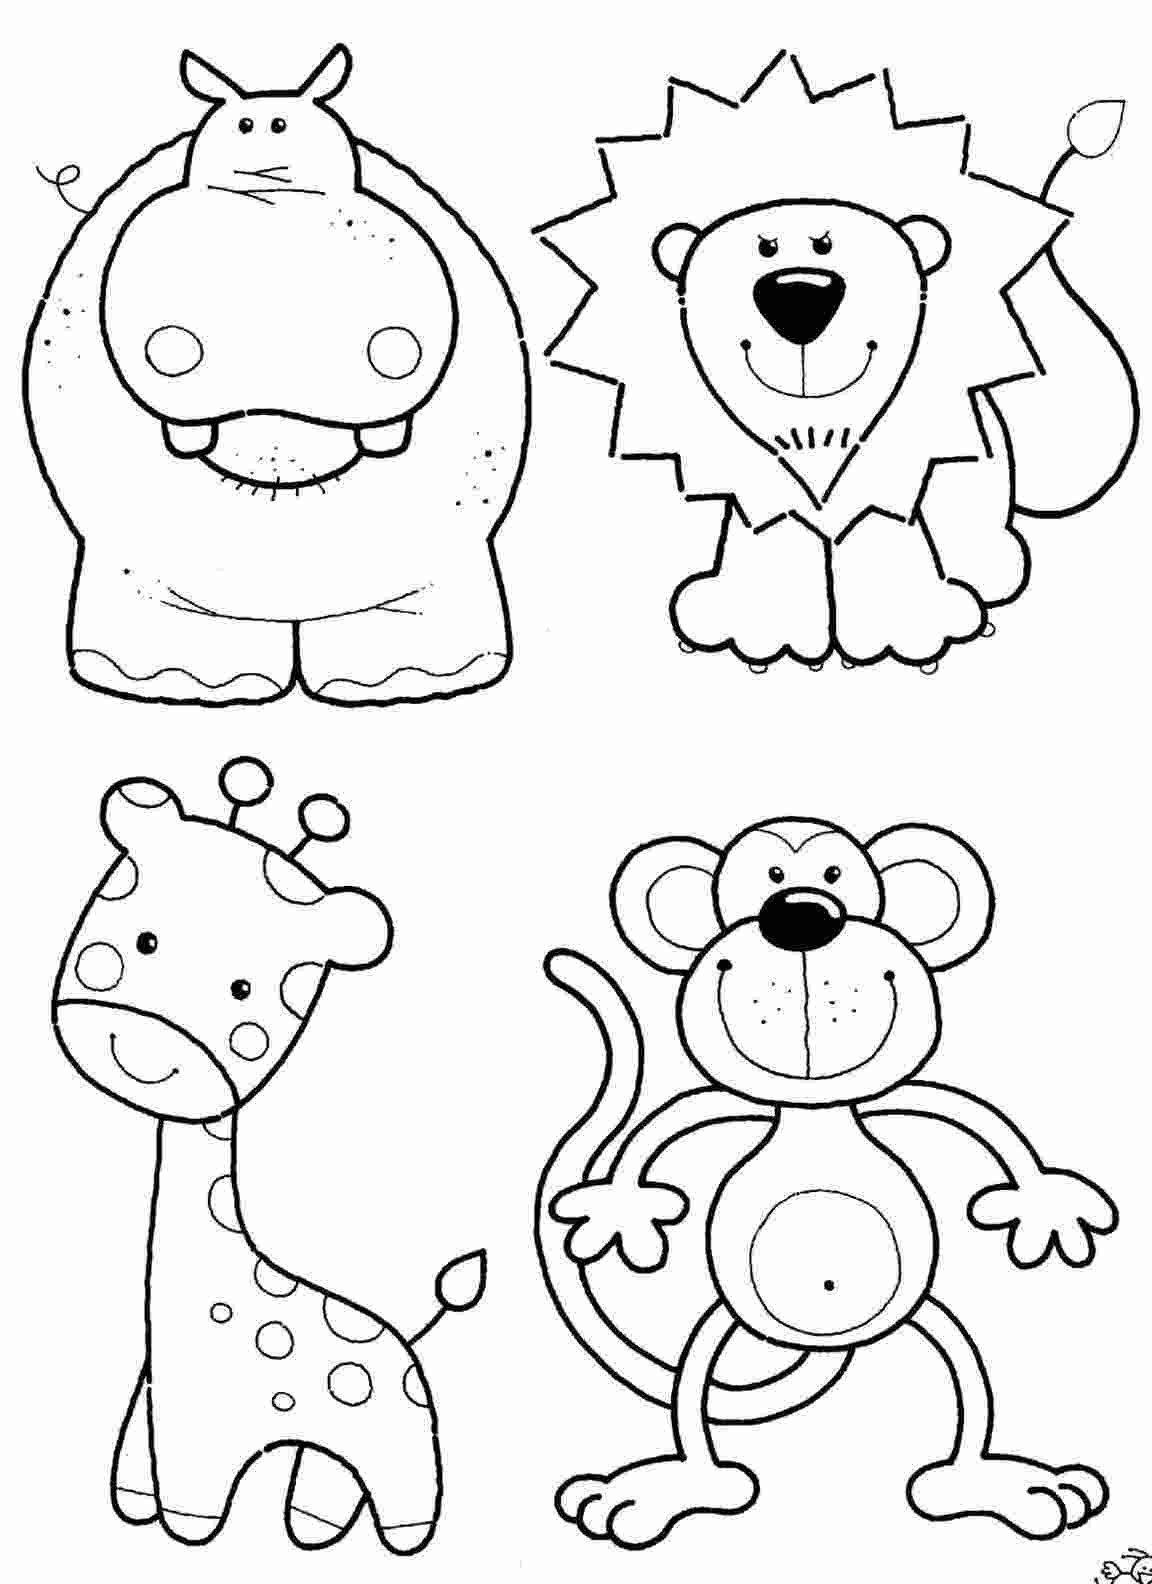 Savanna Animals Coloring Pages African Safari Animals Coloring Pages African Safari In 2020 Zoo Coloring Pages Animal Coloring Books Zoo Animal Coloring Pages